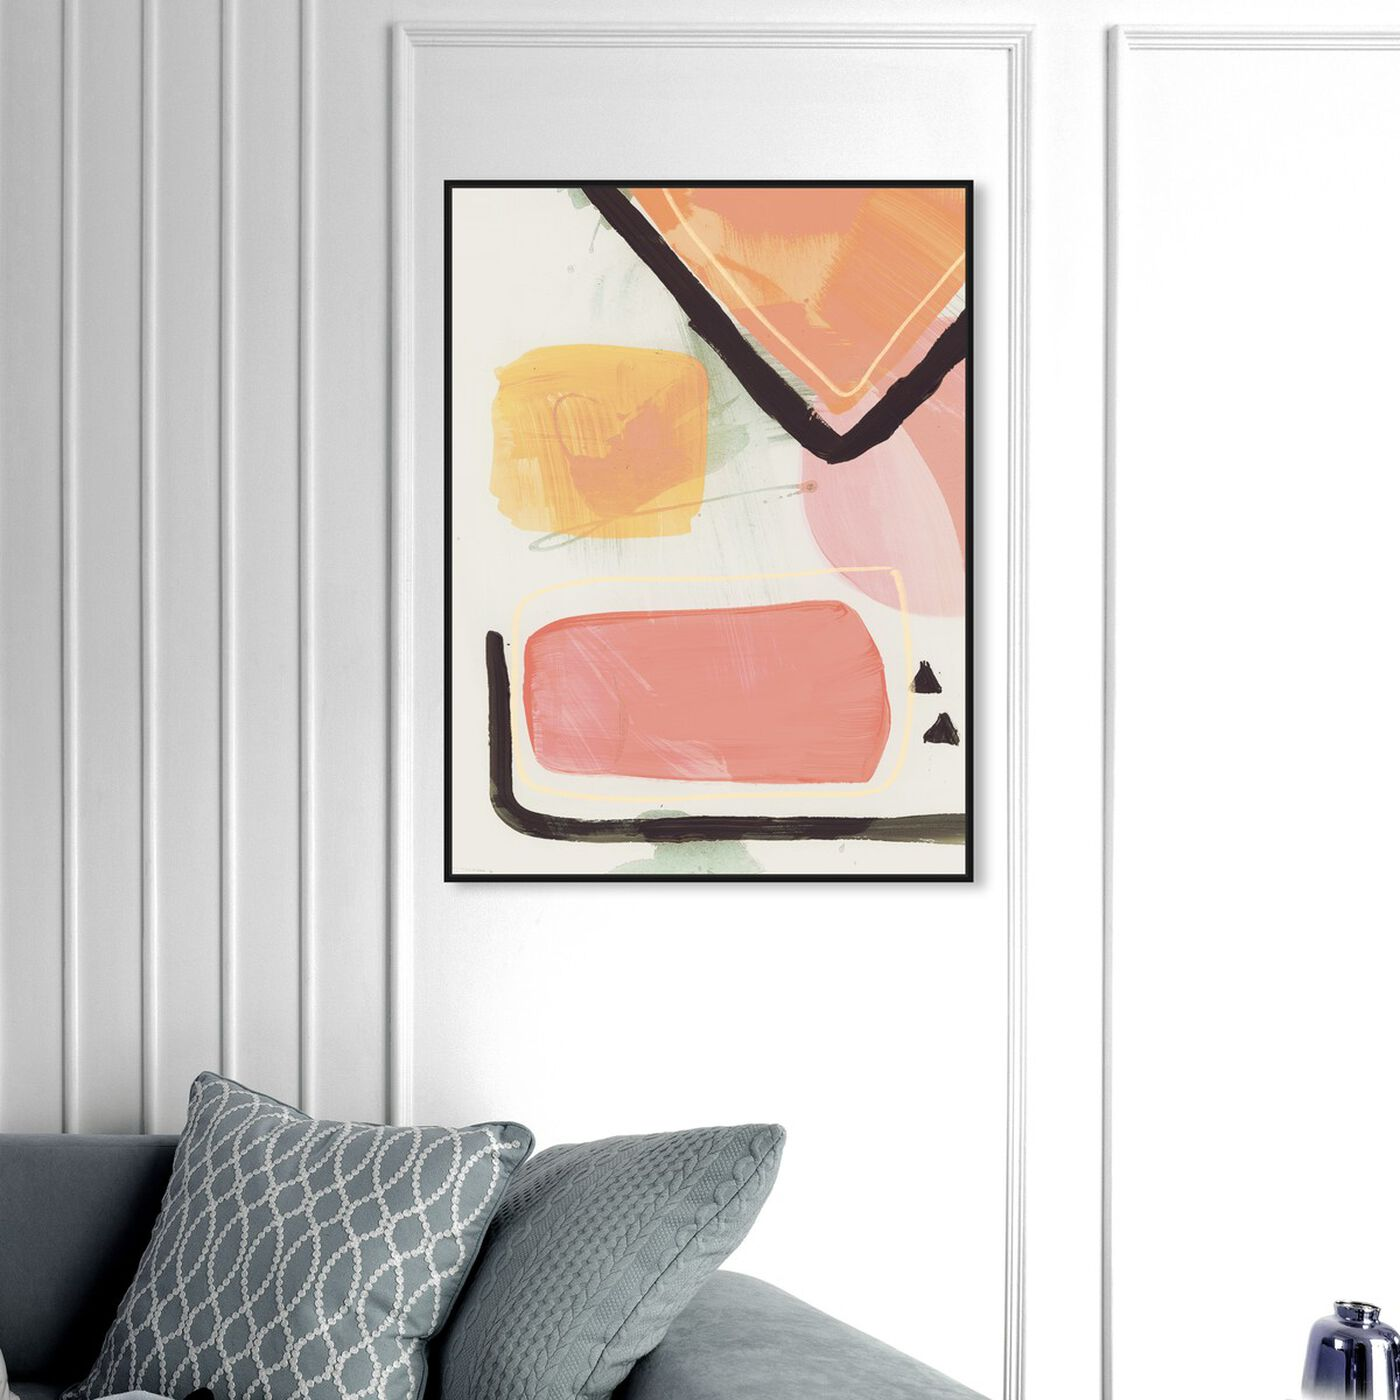 Hanging view of Convince Your Lover featuring abstract and paint art.